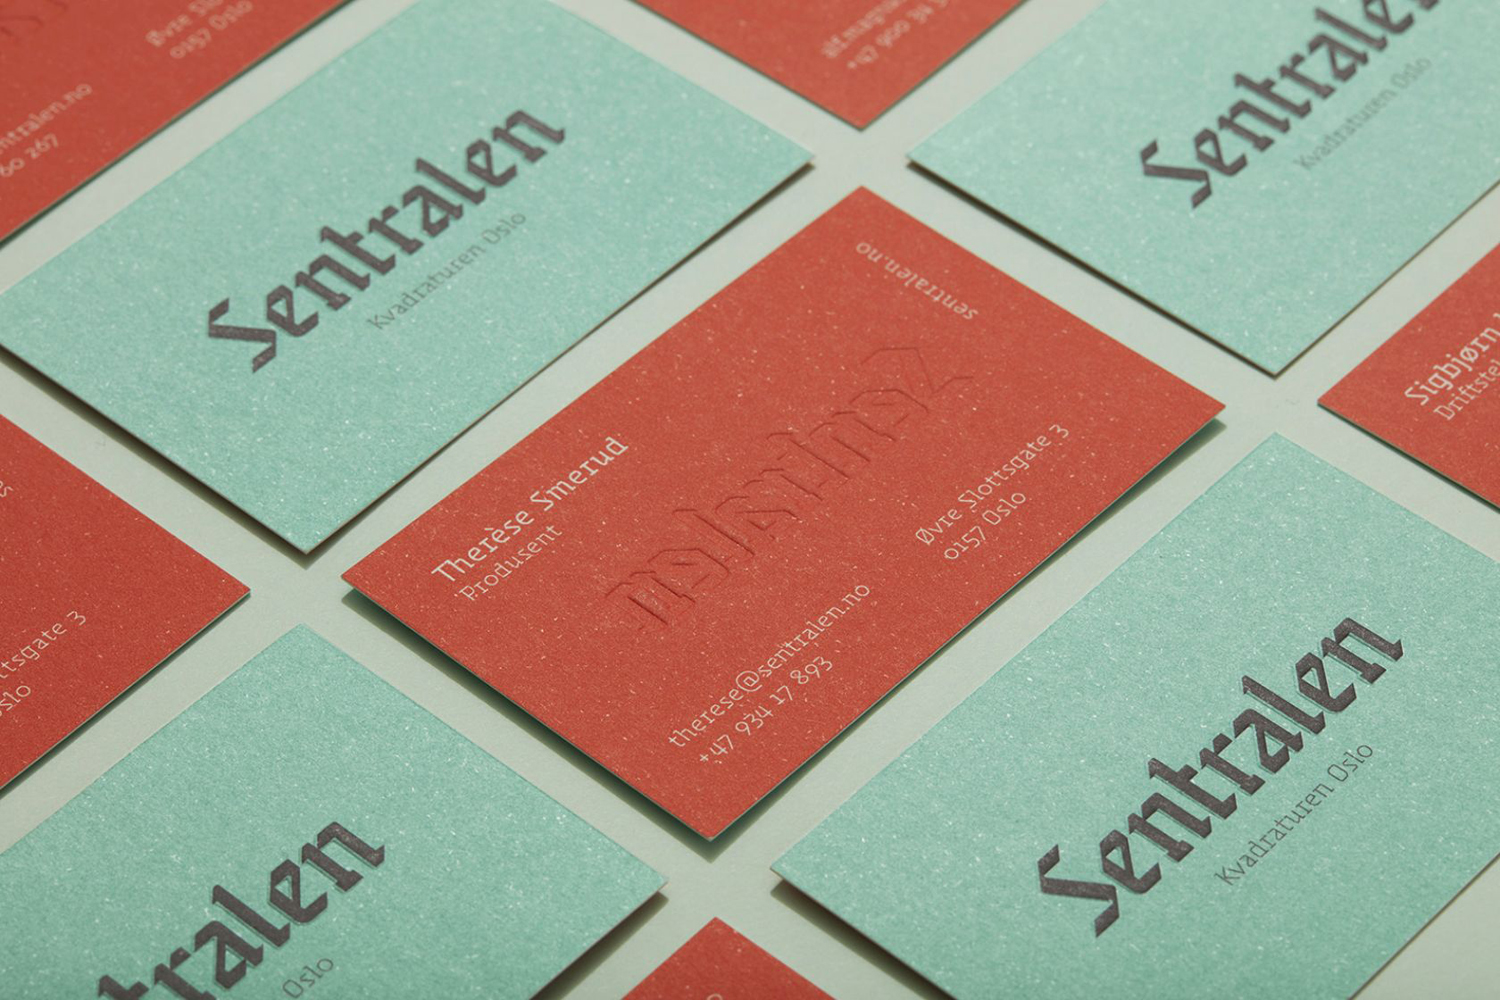 Embossed business cards for Sentralen by Metric Design, Norway